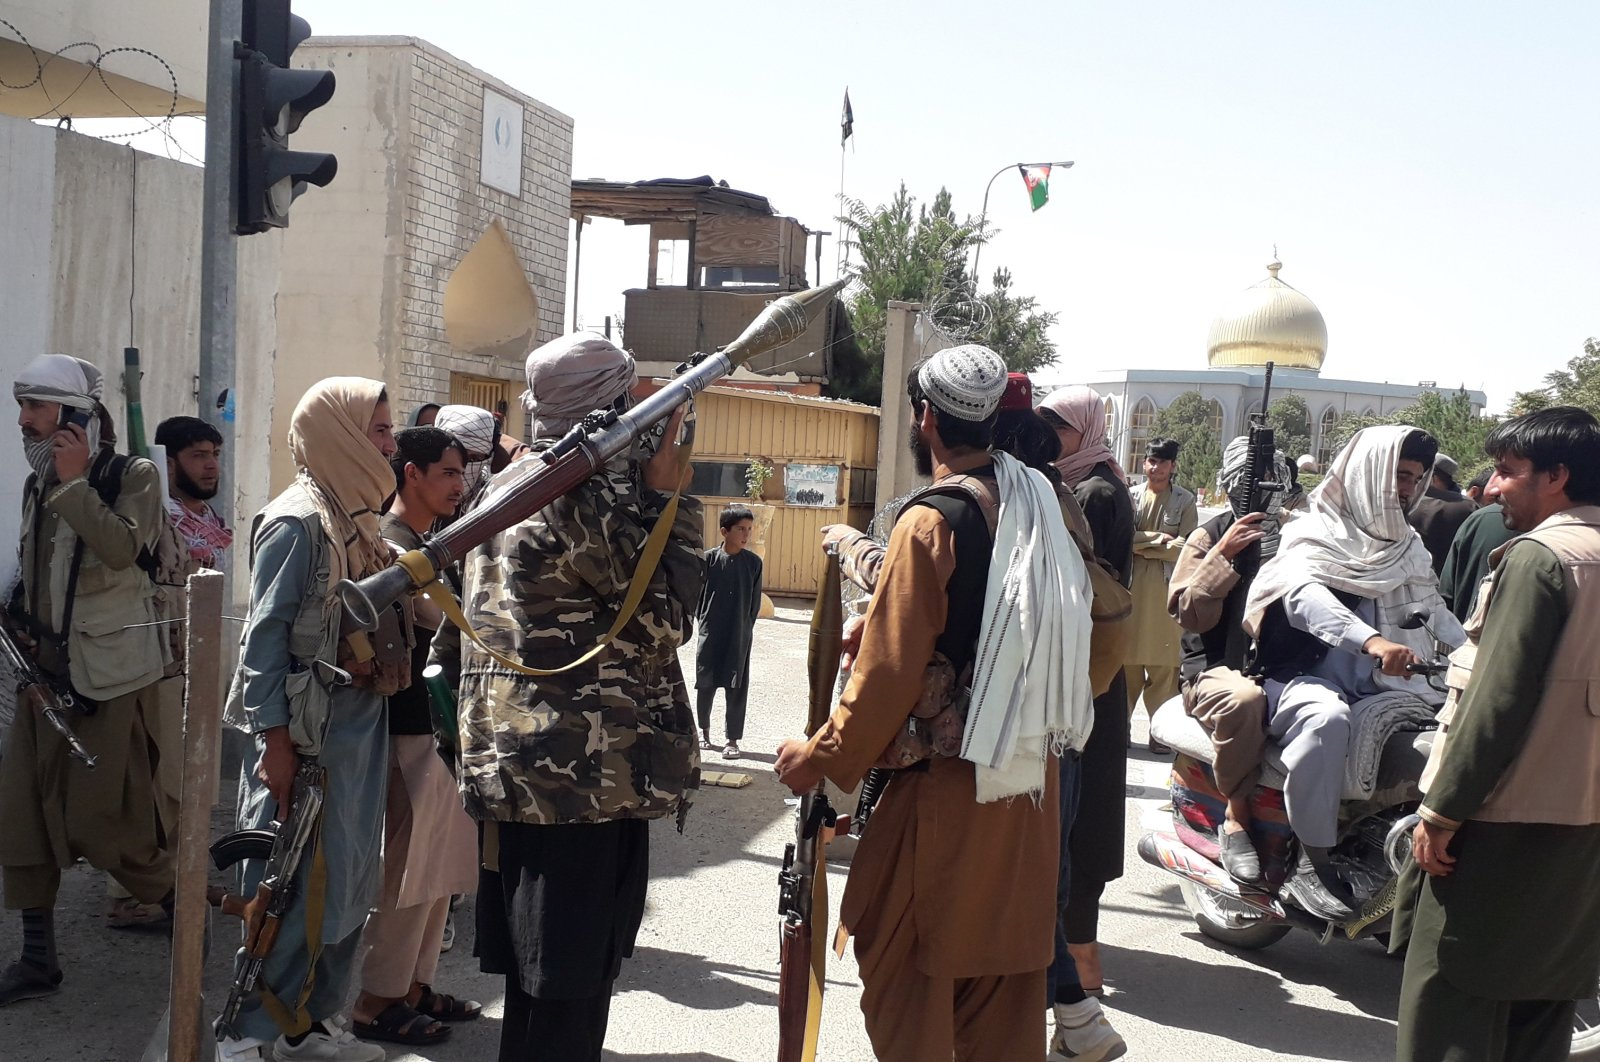 Taliban militants patrol after taking control of the governor's house and Ghazni city, in Afghanistan, Aug. 12, 2021. (EPA Photo)